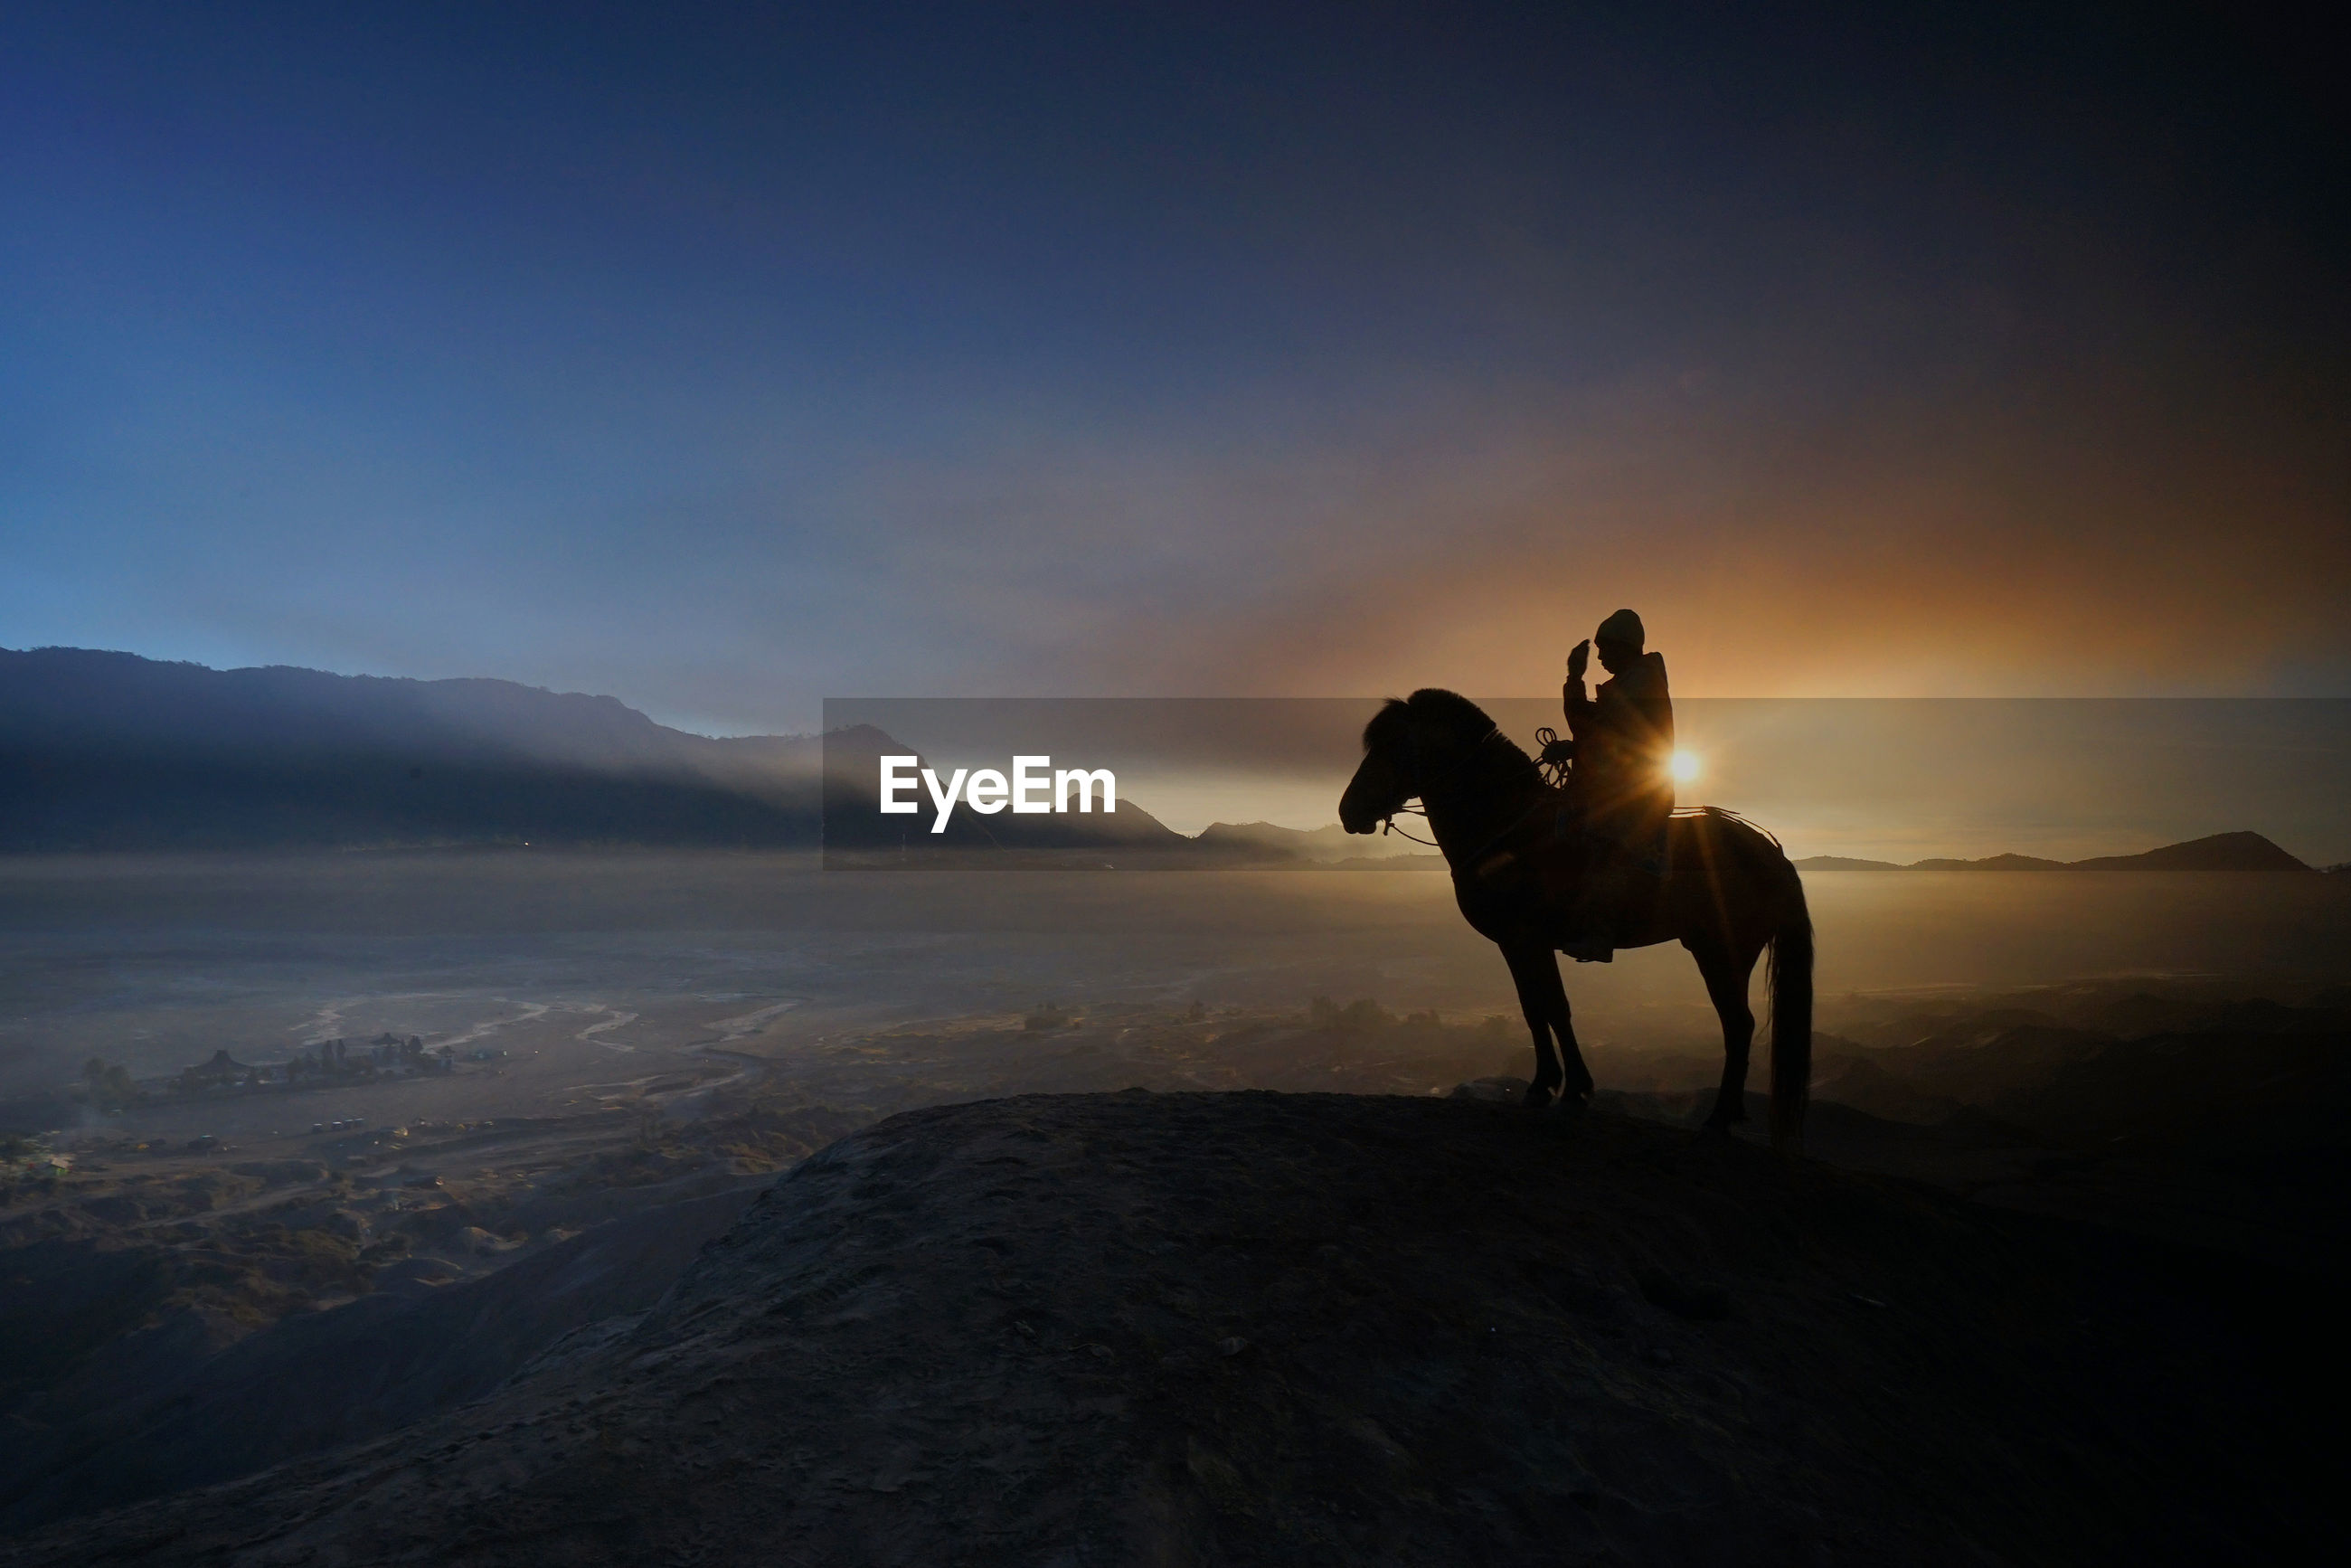 Silhouette man sitting on horse over mountain